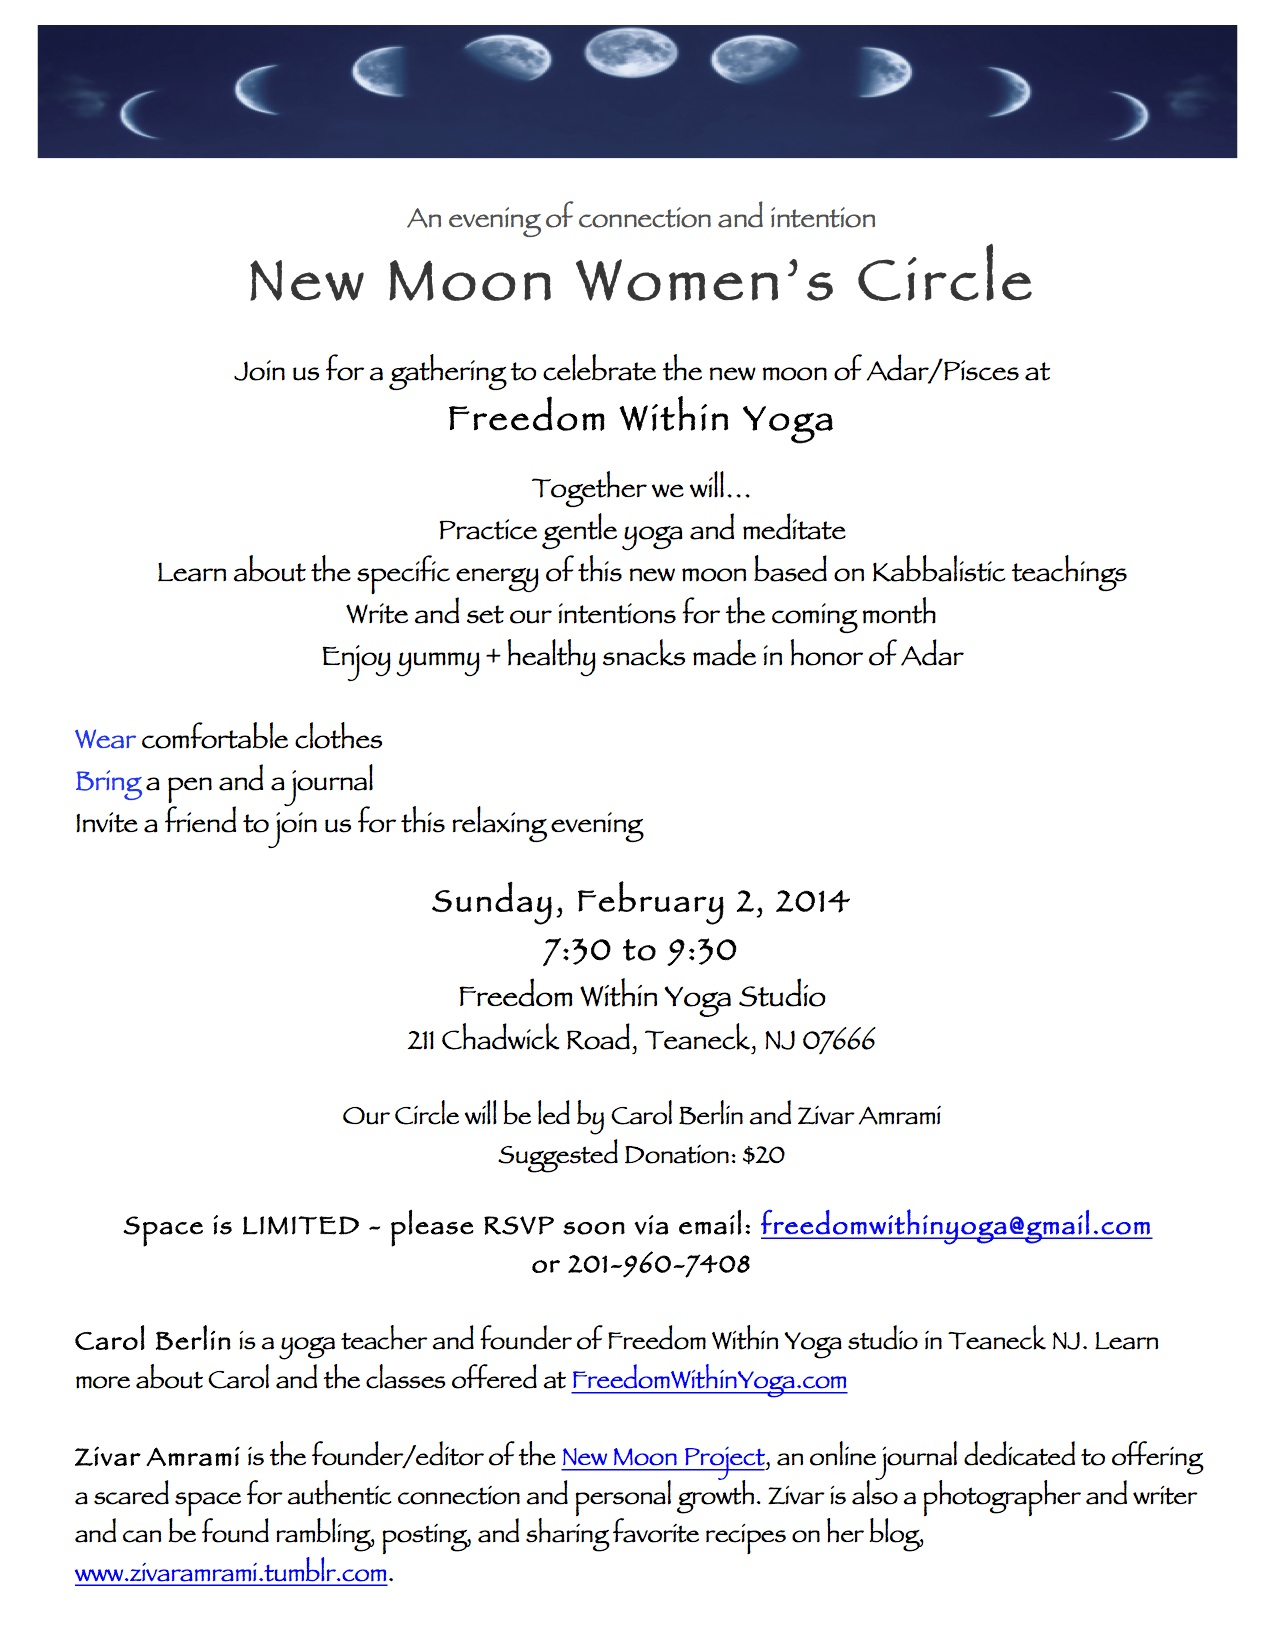 February 2014 New Moon Women's Circle — Freedom Within Yoga